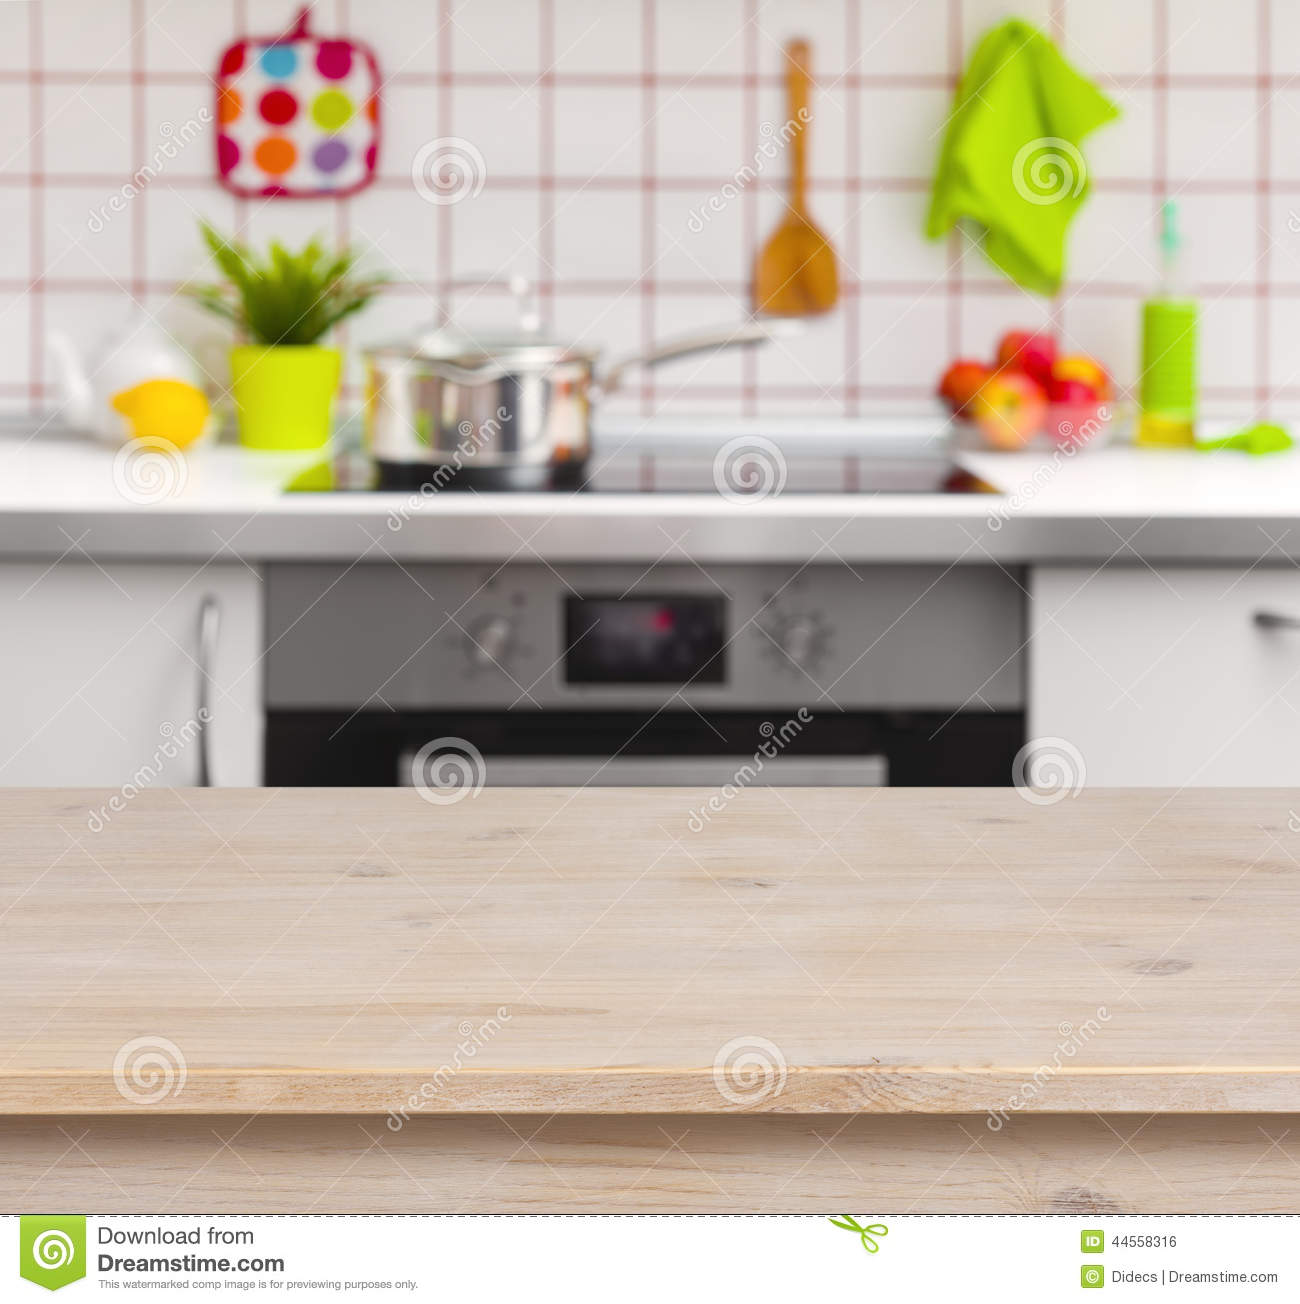 Wooden Table On Blurred Kitchen Bench Background Stock Photo - Image